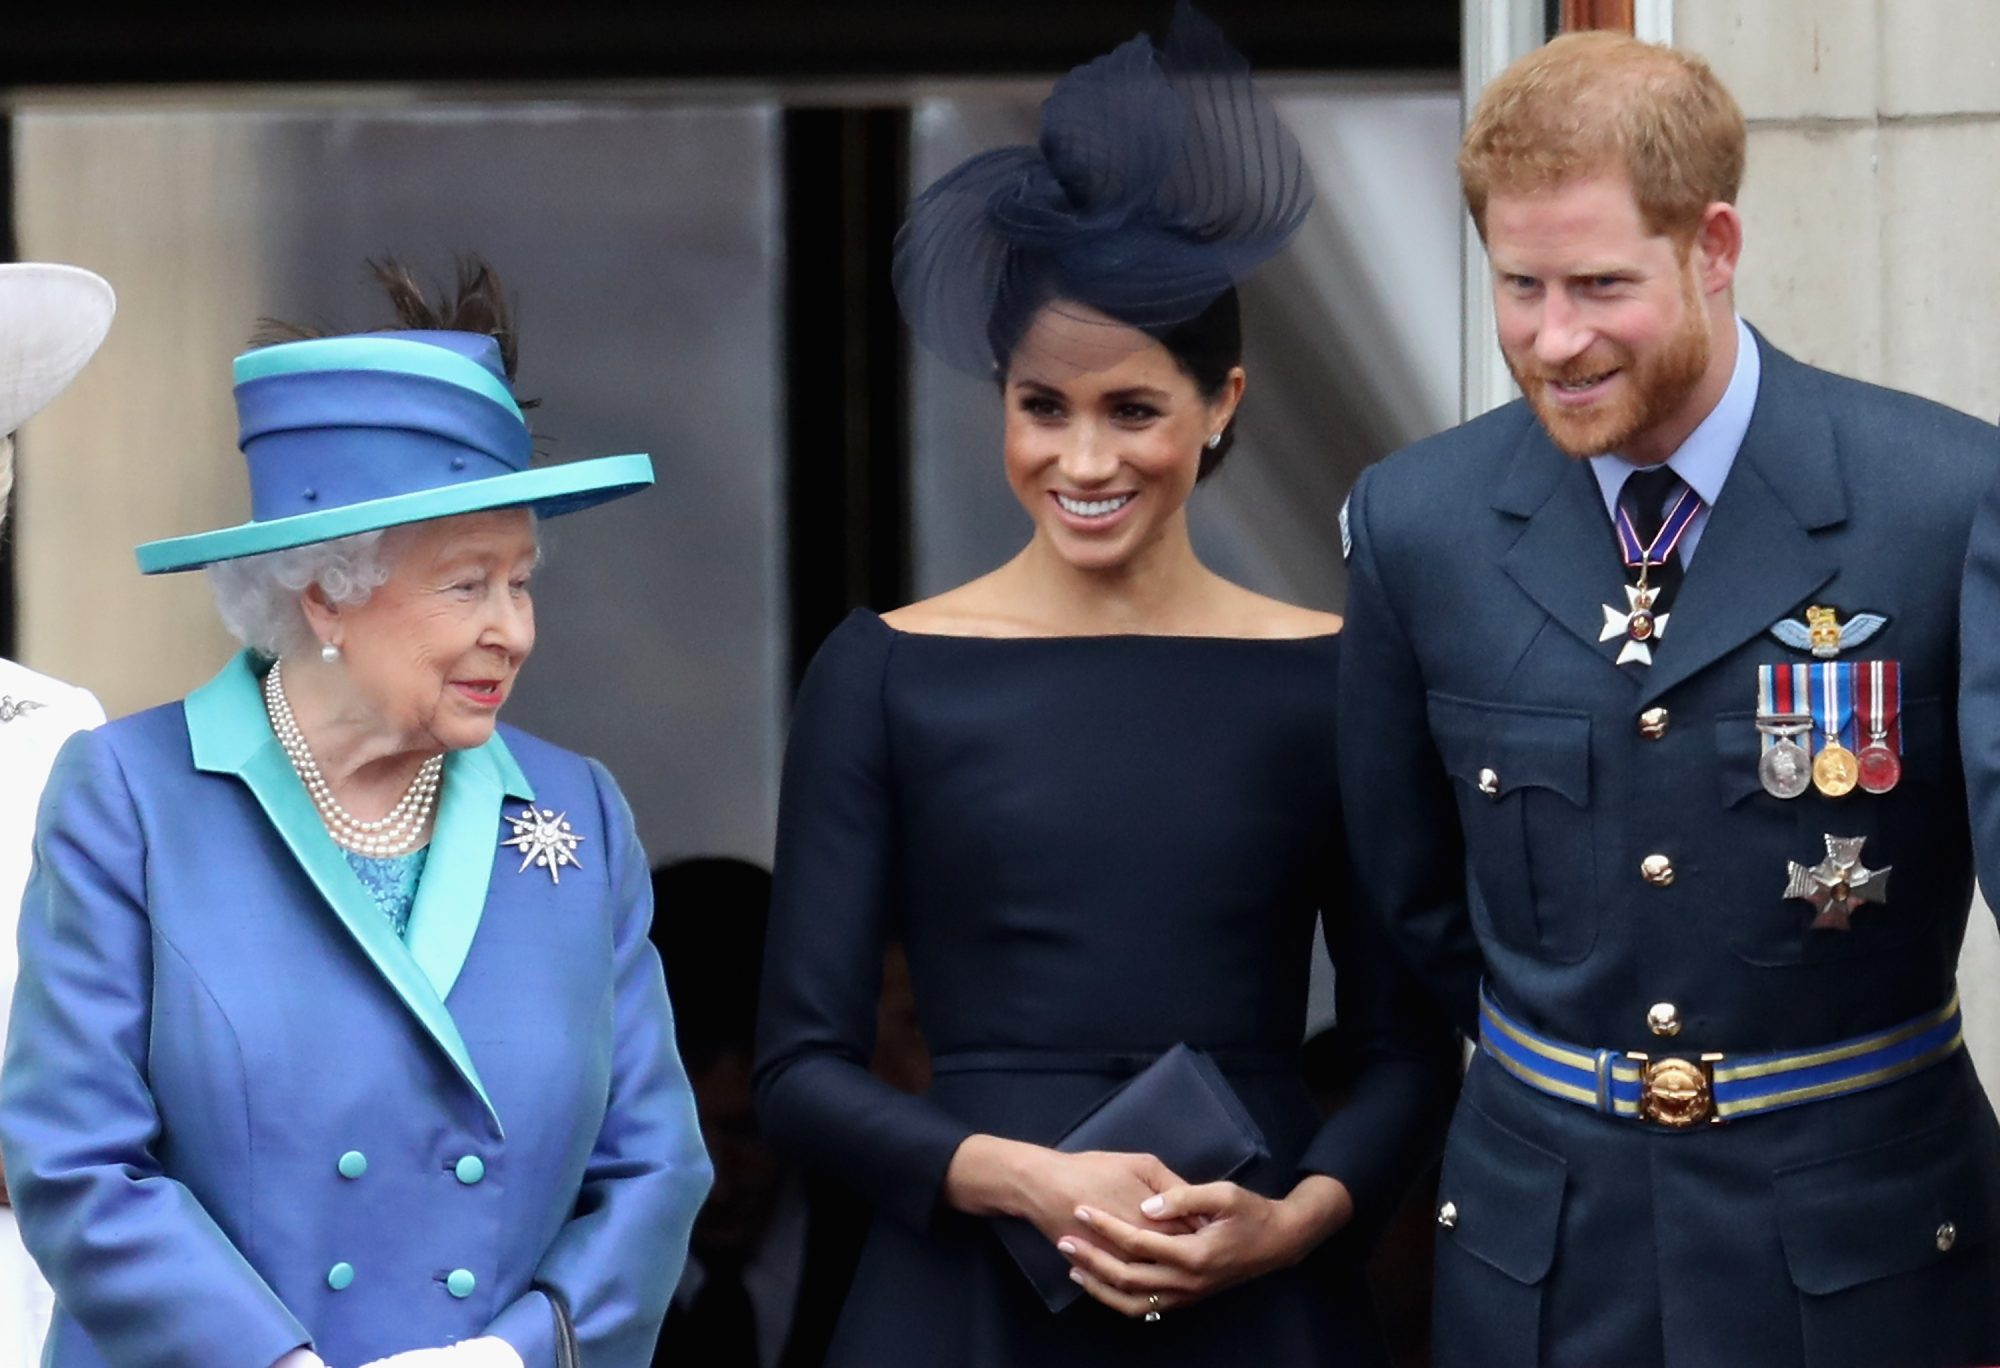 Prince Harry and Meghan Markle Reveal Queen Elizabeth's Nicknames